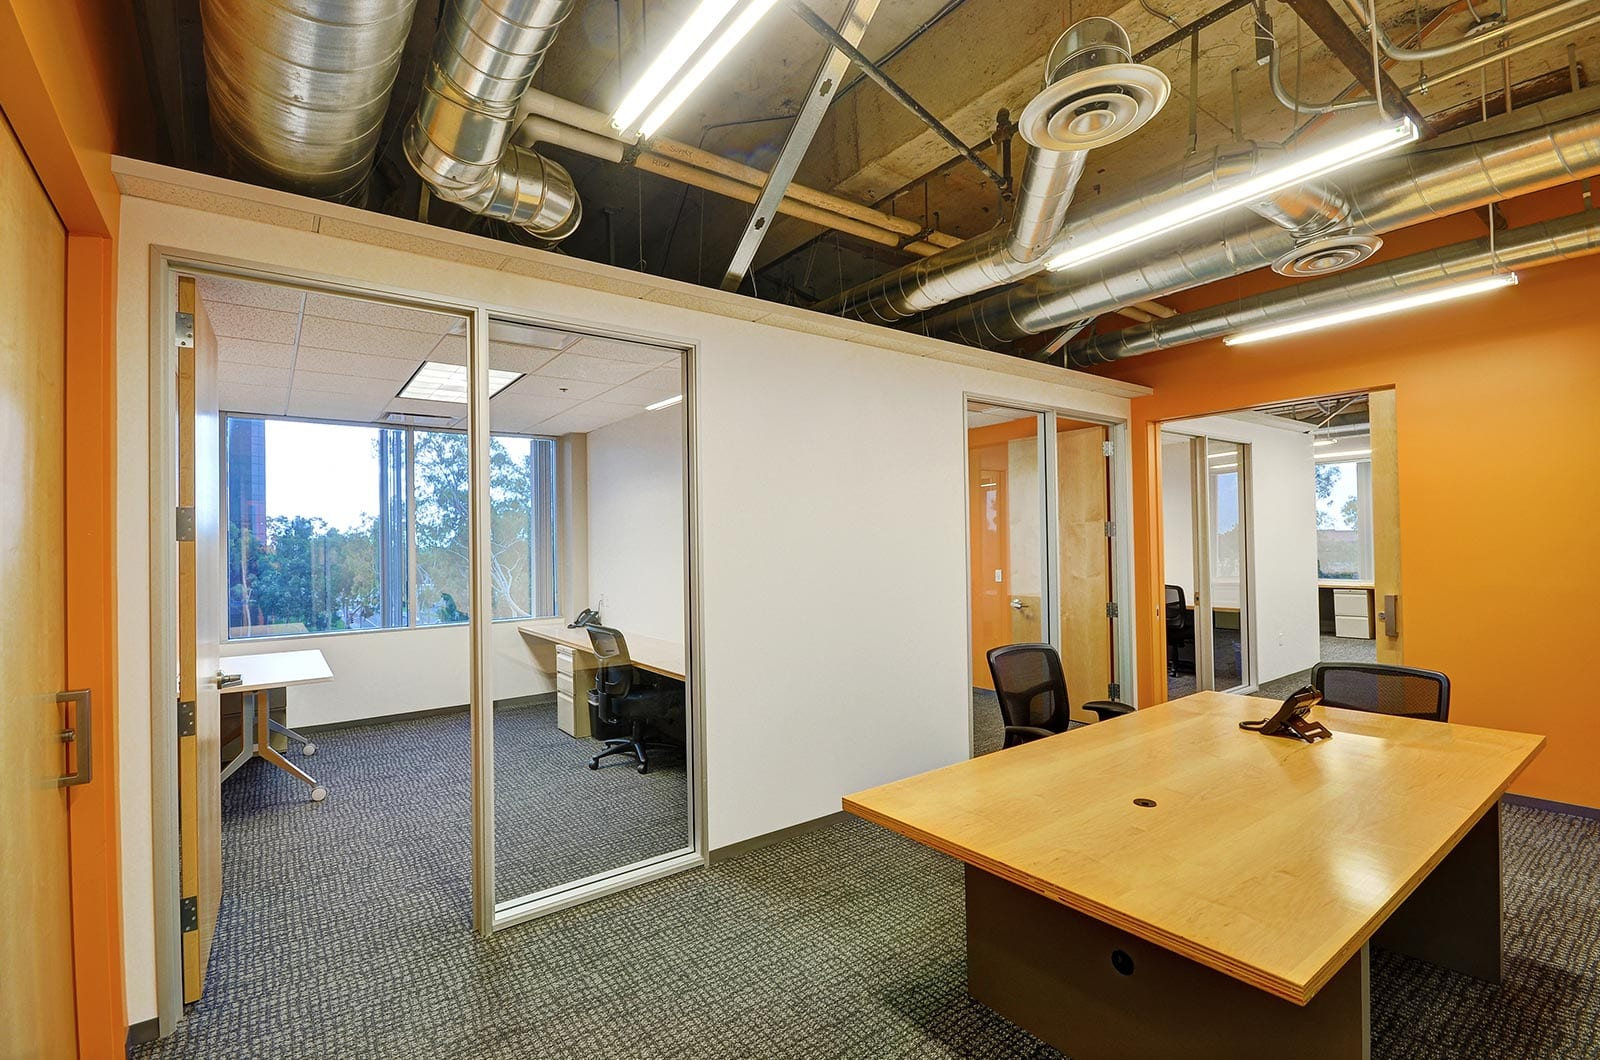 Office-Room-Commercial-Real-Estate-Virtual-Tour-Office-Building-Virtual-Tours-